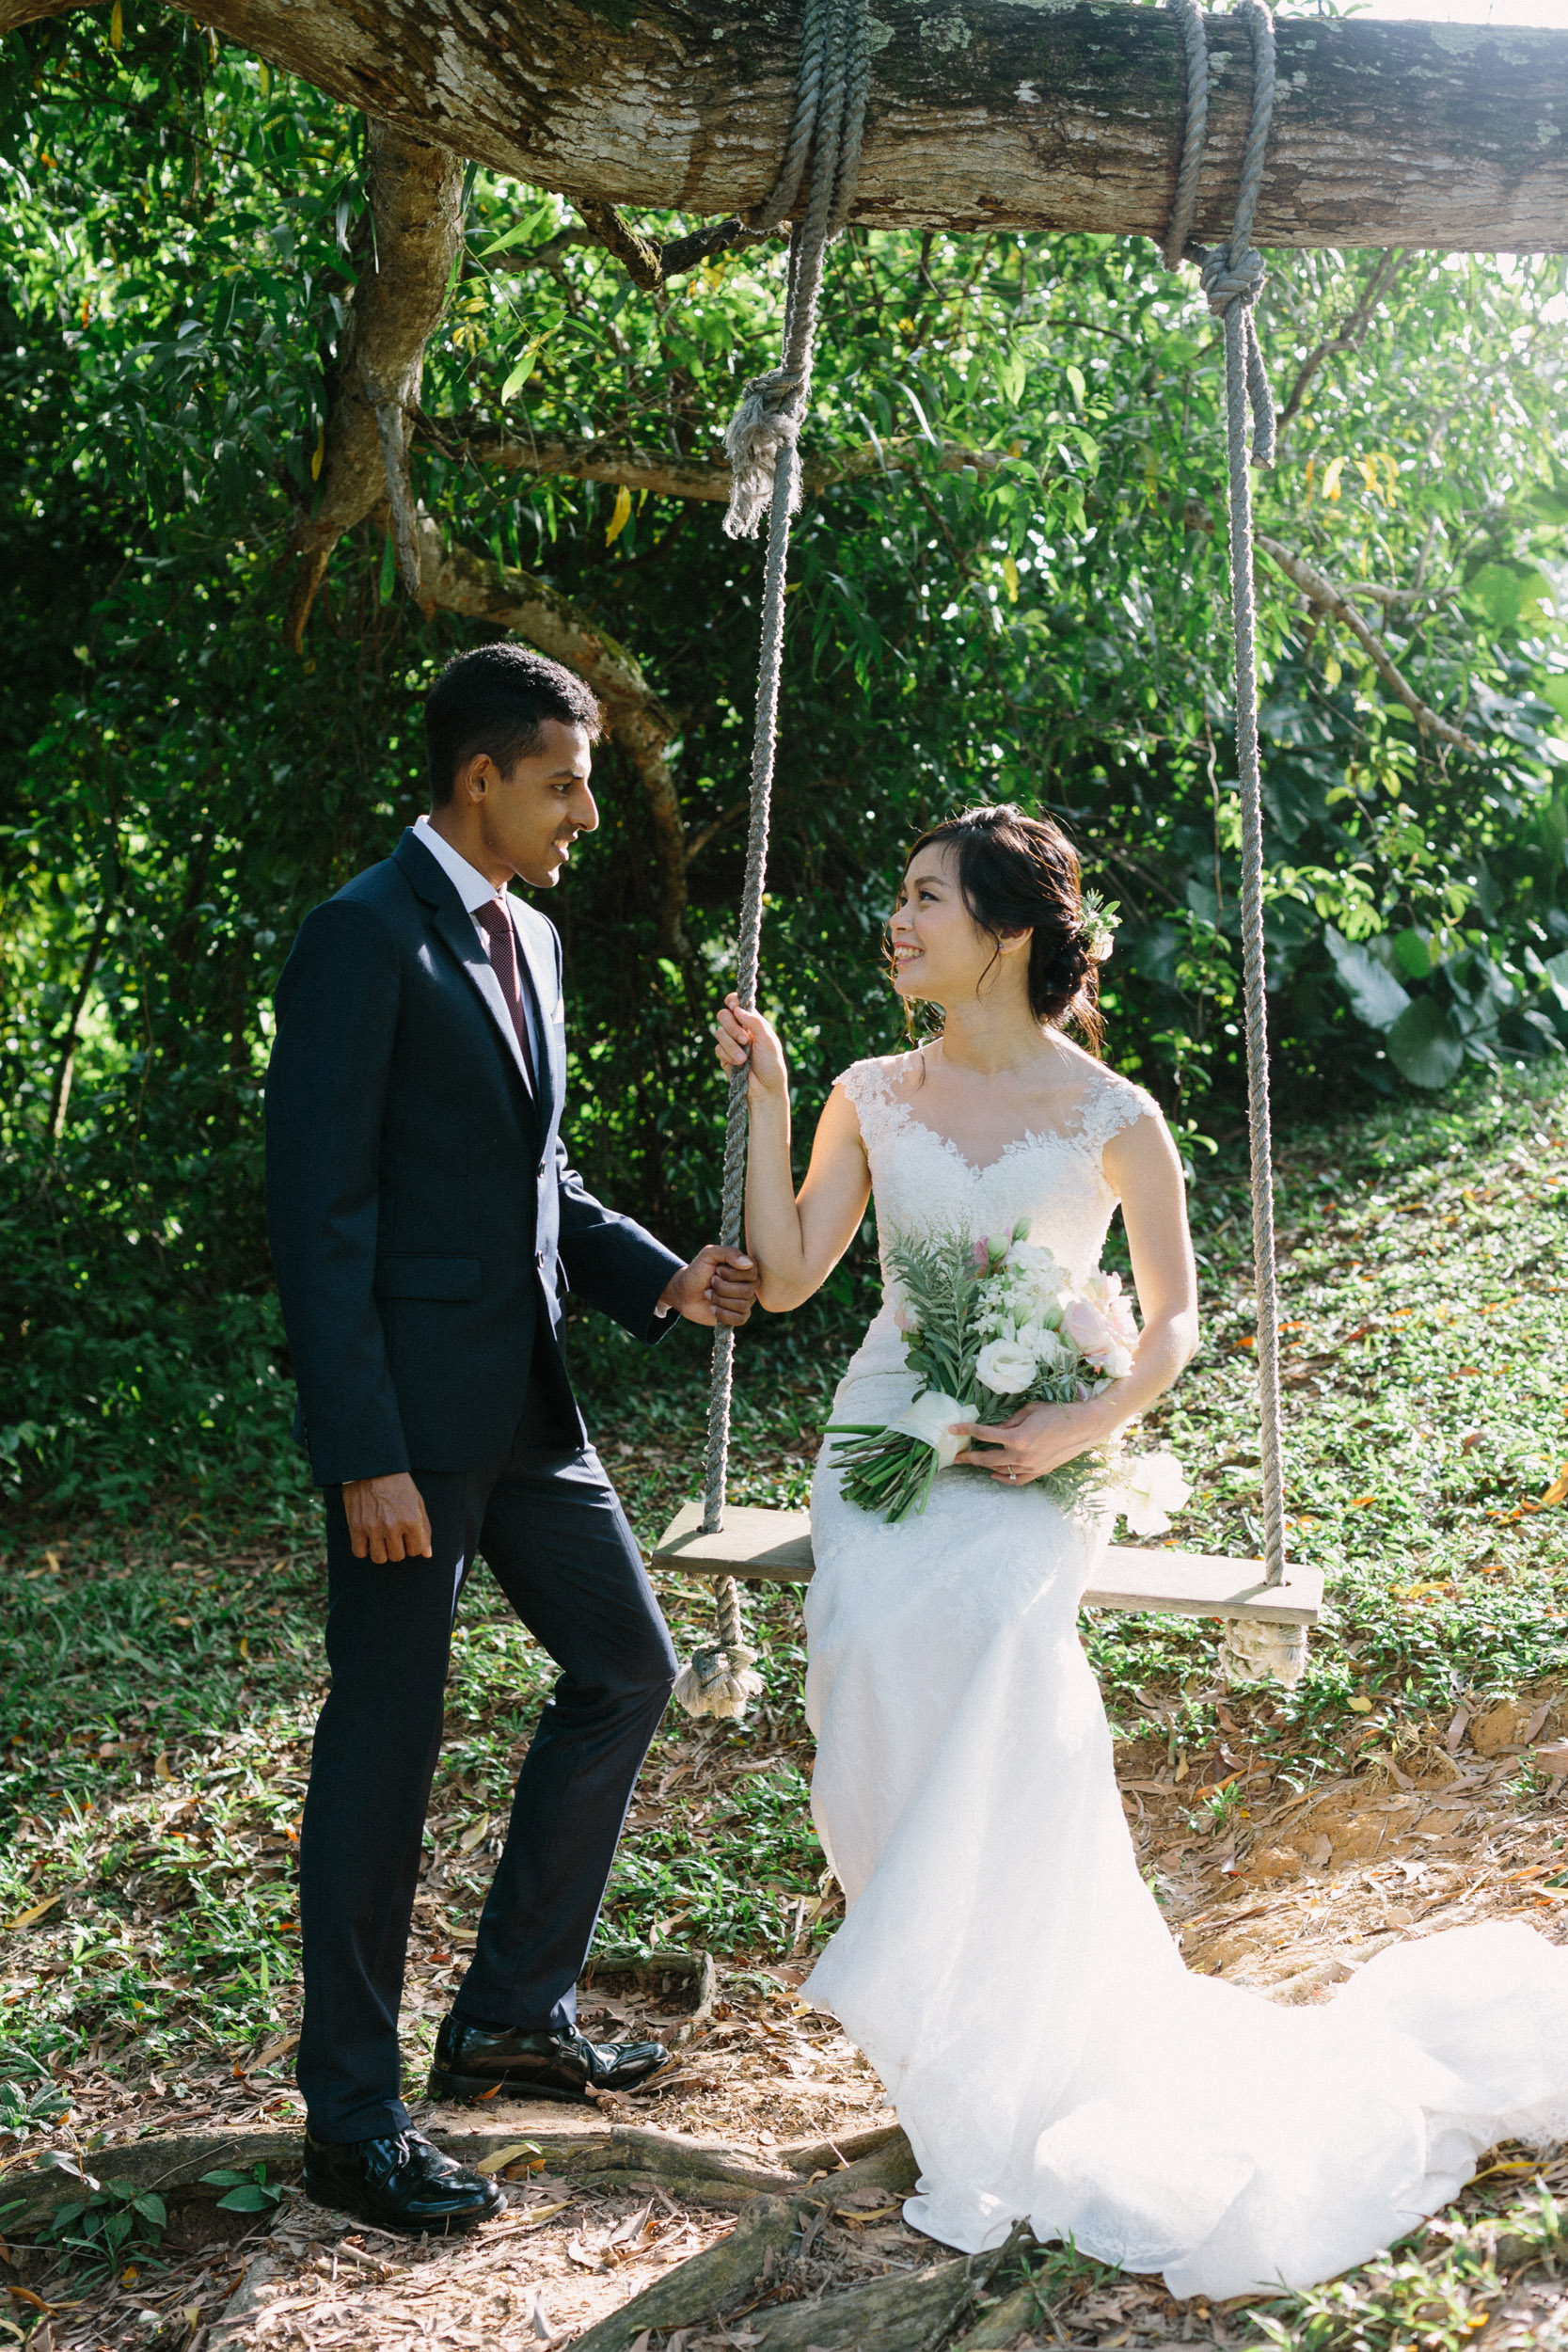 singapore-wedding-photographer-wemadethese-suriya-xinqi-08.jpg